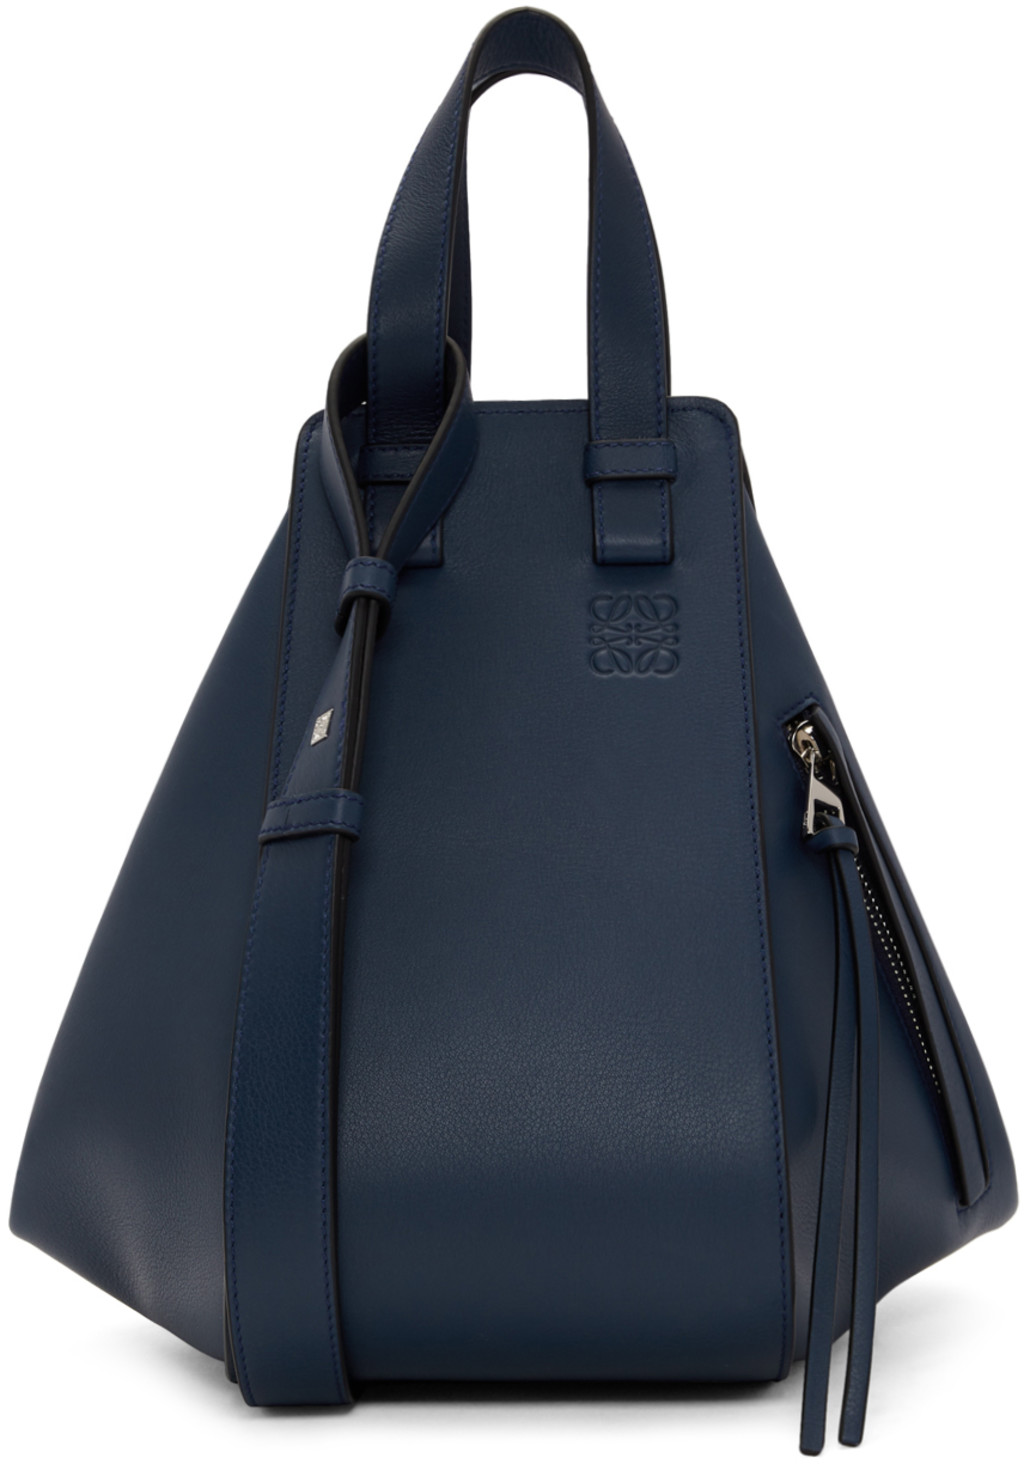 355856e2ee7a Loewe bags for Women